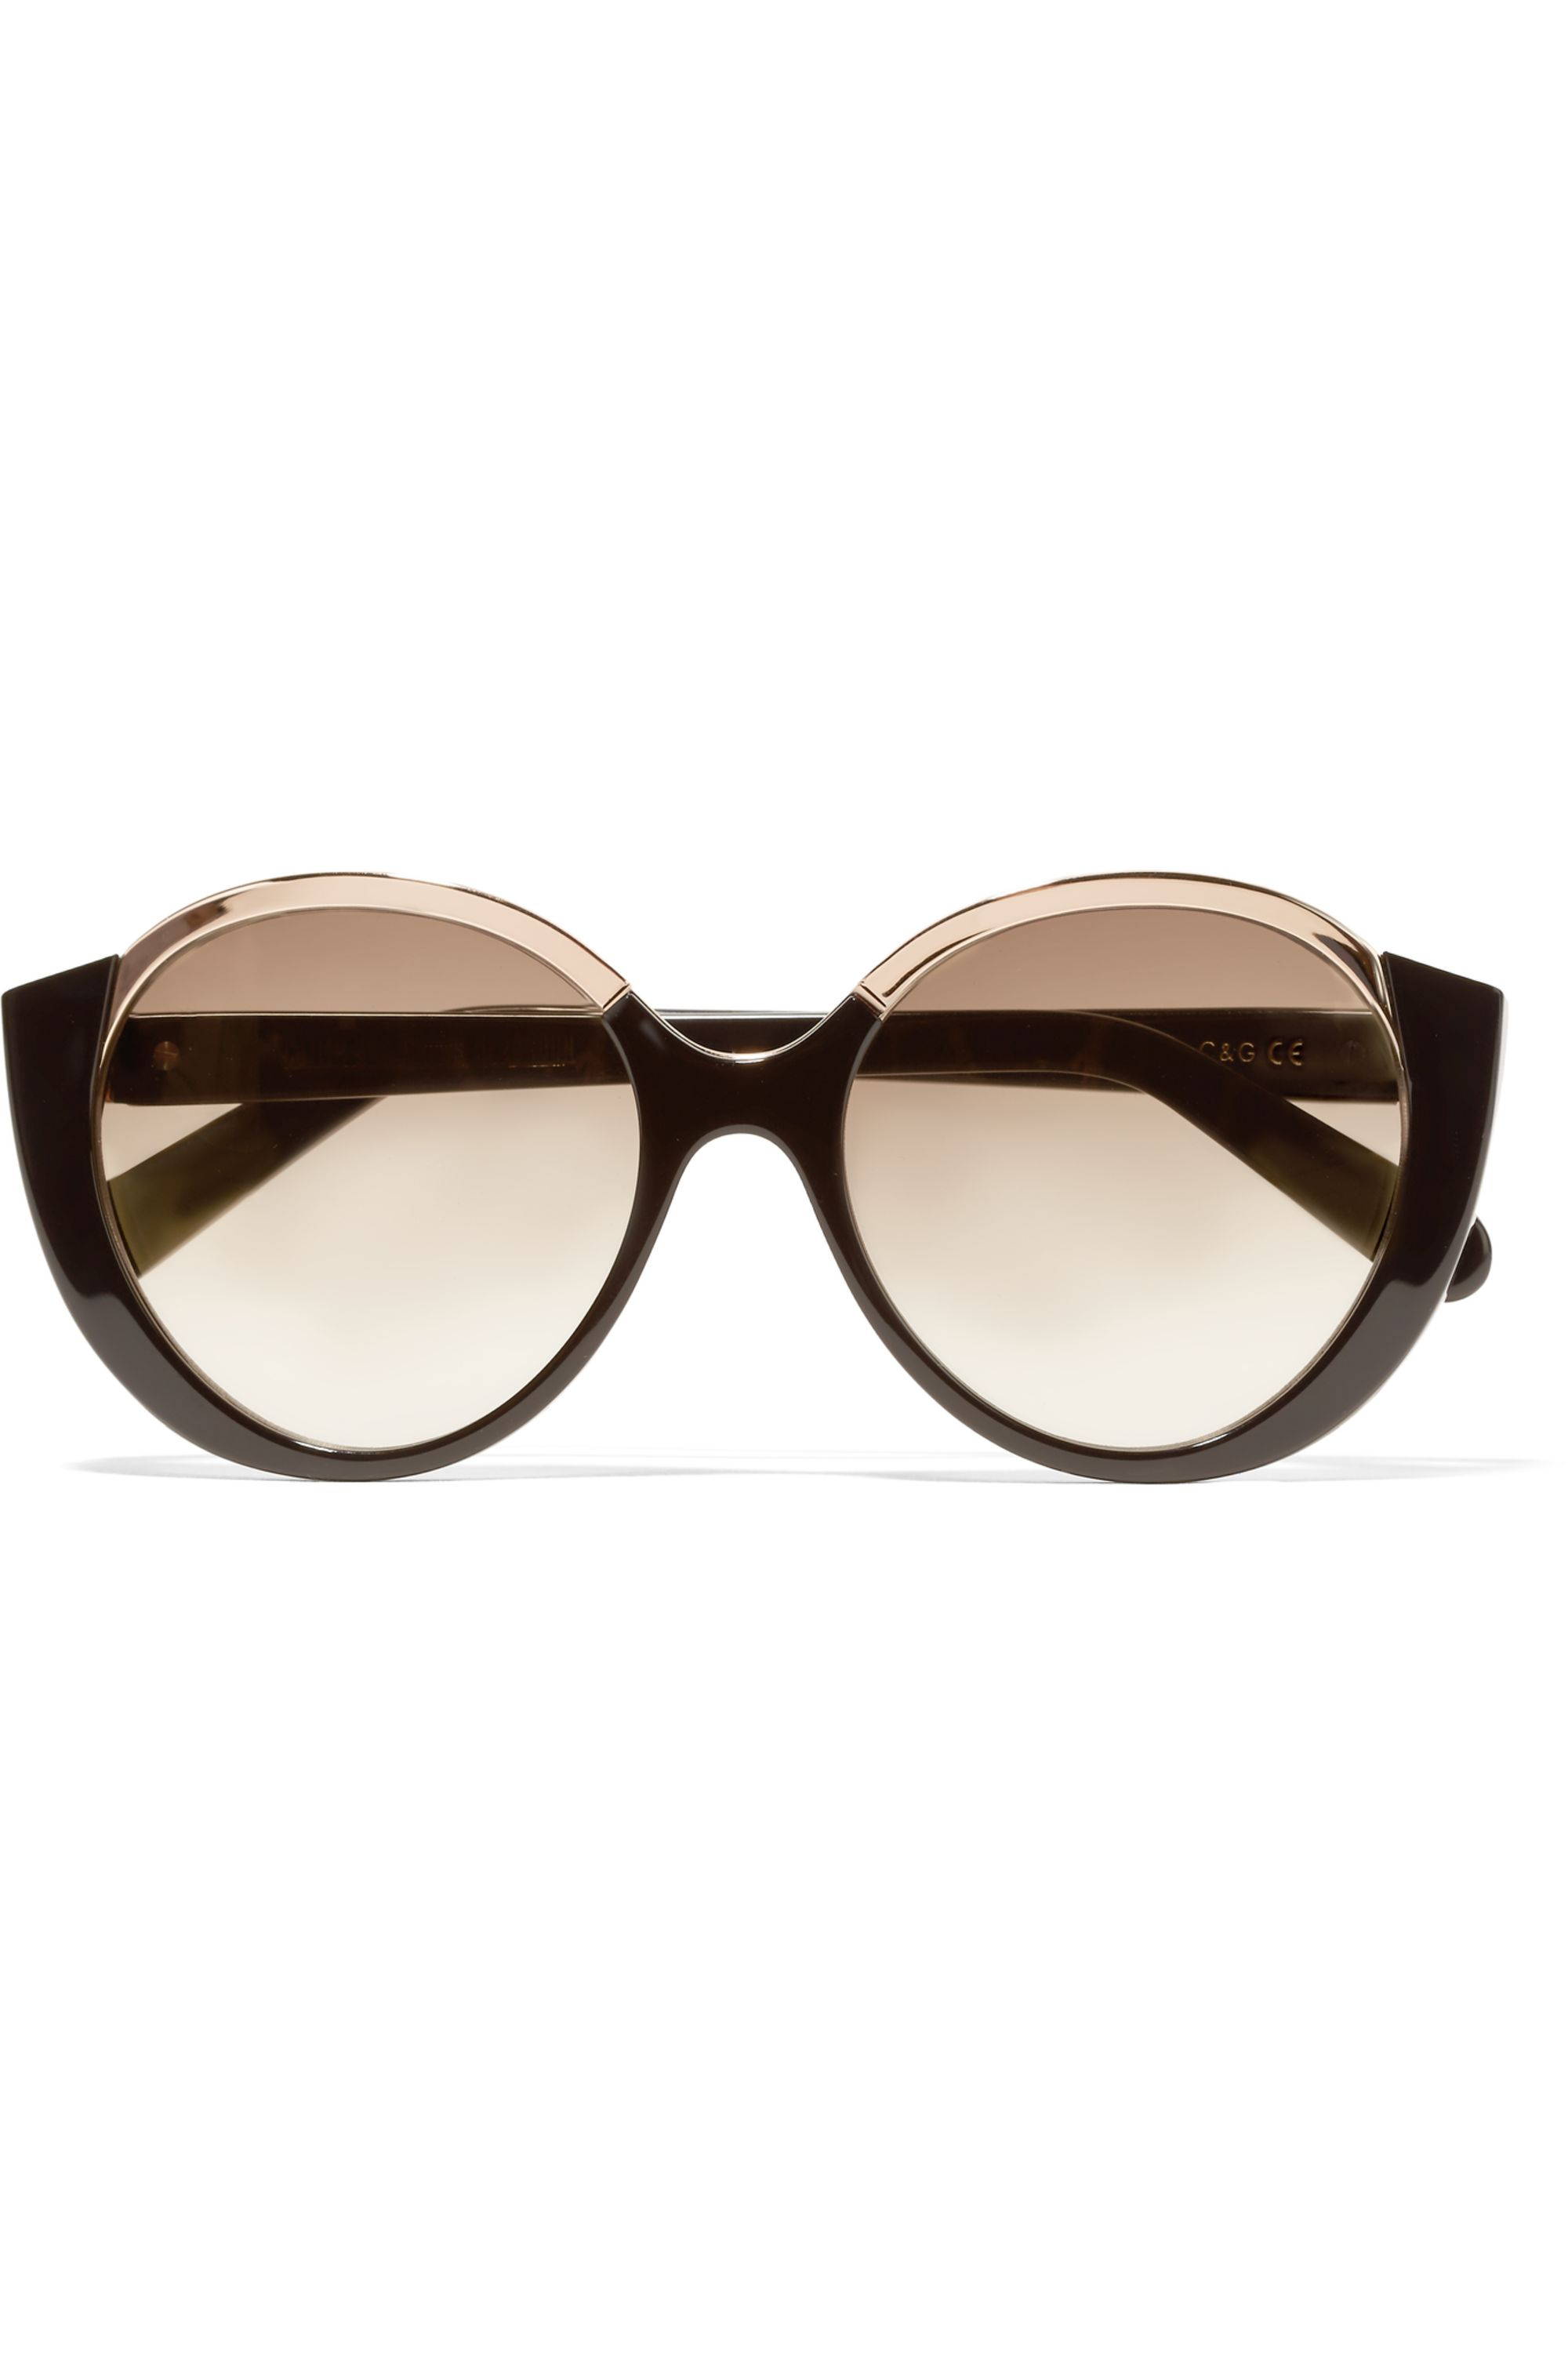 Cutler and Gross Mai Tai round-frame acetate and rose gold-tone sunglasses